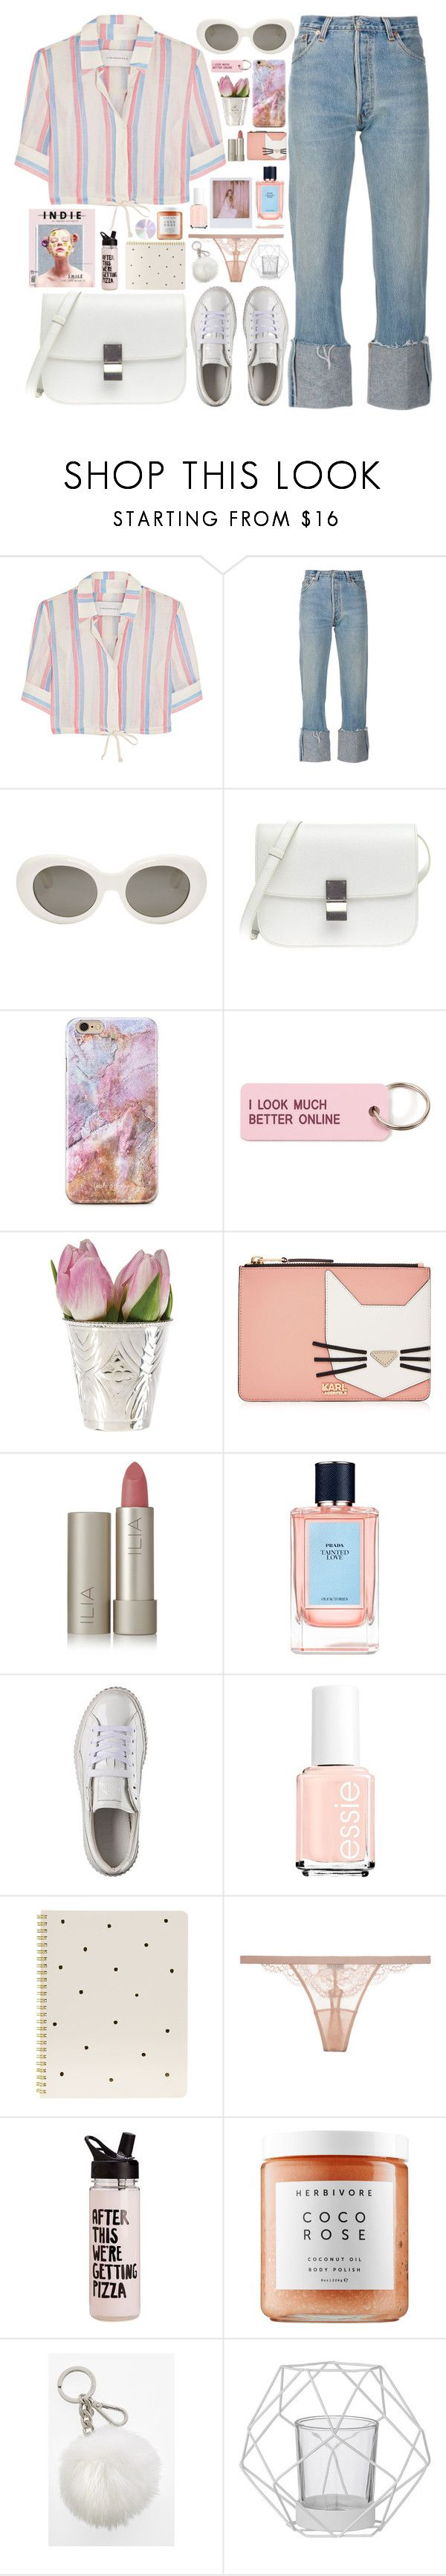 """""""322. Pastel City"""" by ass-sass-in ❤ liked on Polyvore featuring Solid & Striped, Acne Studios, Various Projects, Karl Lagerfeld, Ilia, Prada, Puma, Band of Outsiders, Sugar Paper and La Perla"""